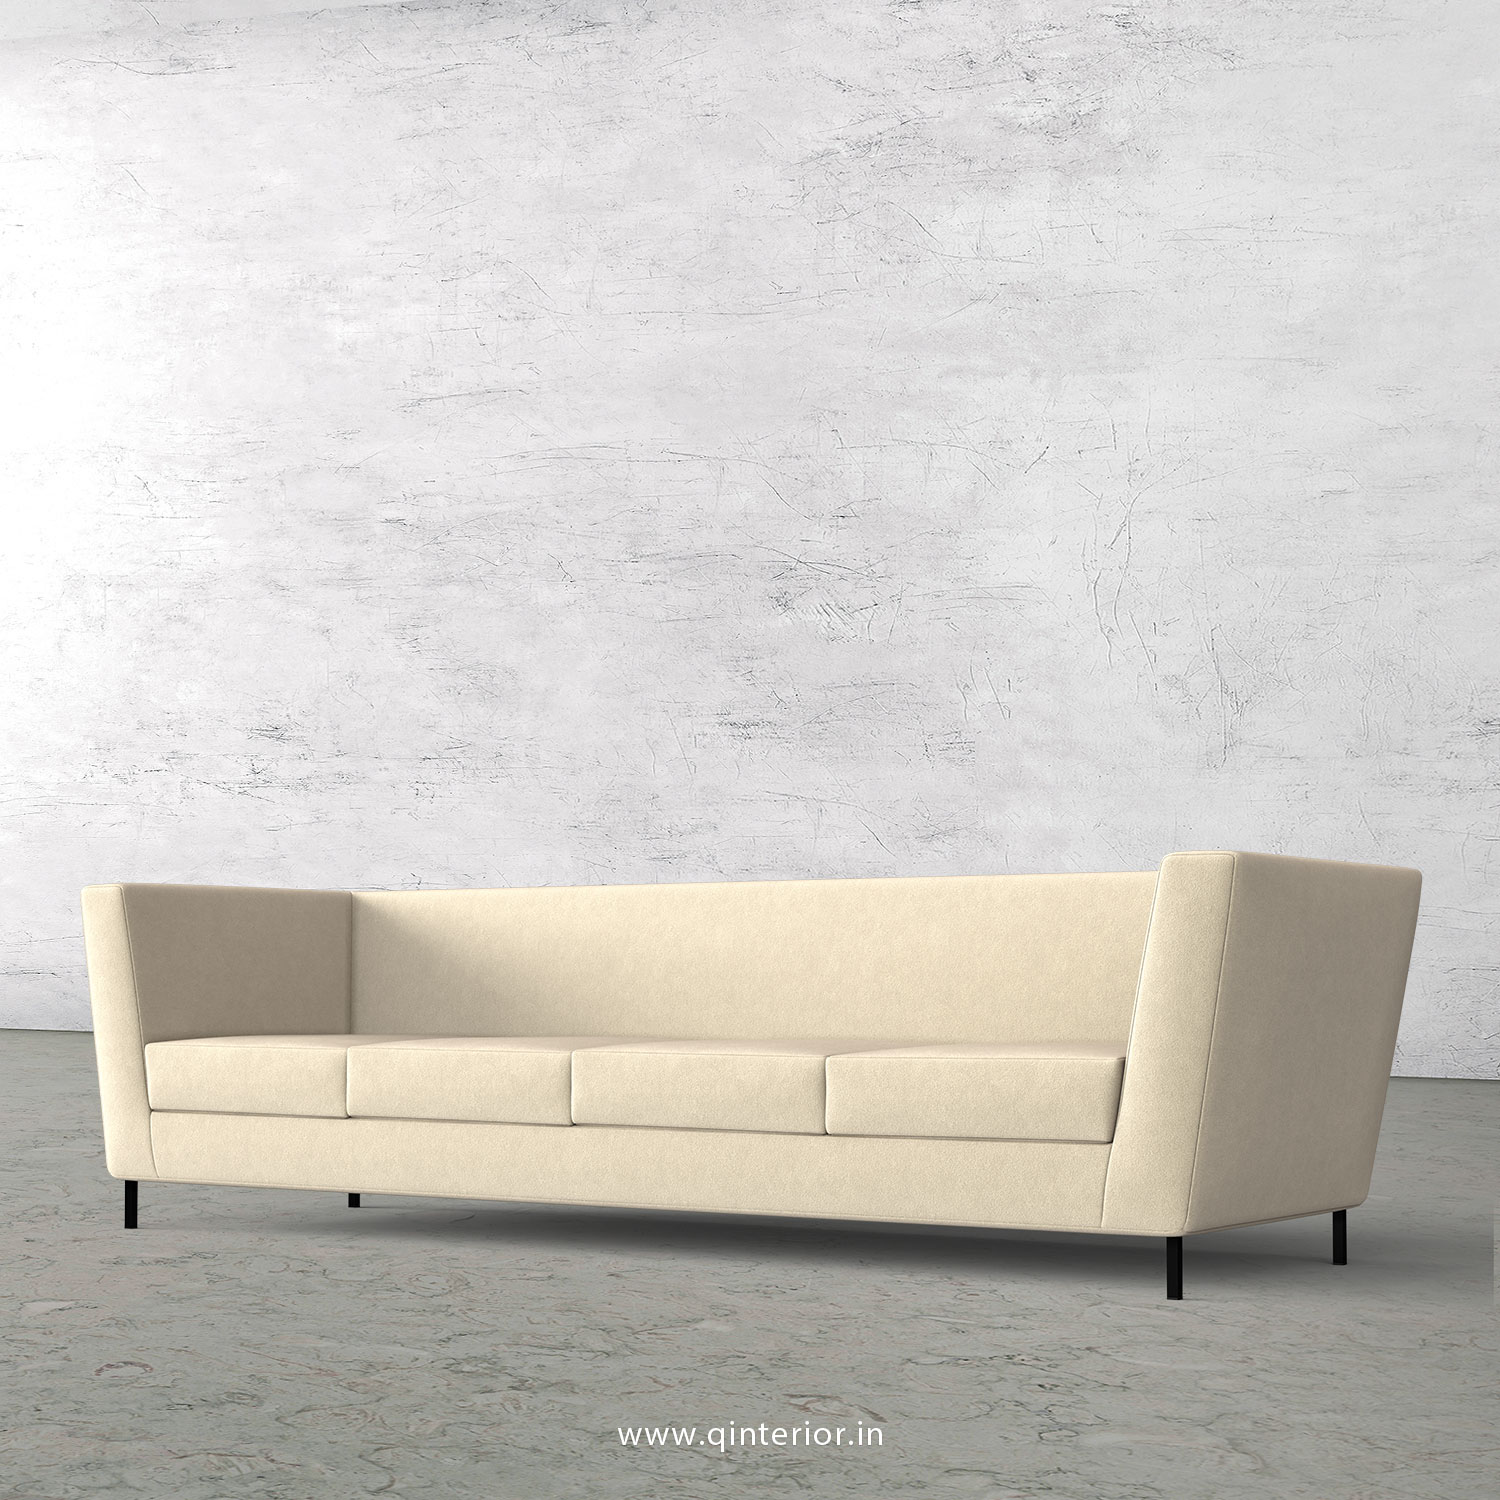 Gloria 4 Seater Sofa in Velvet Fabric - SFA018 VL01